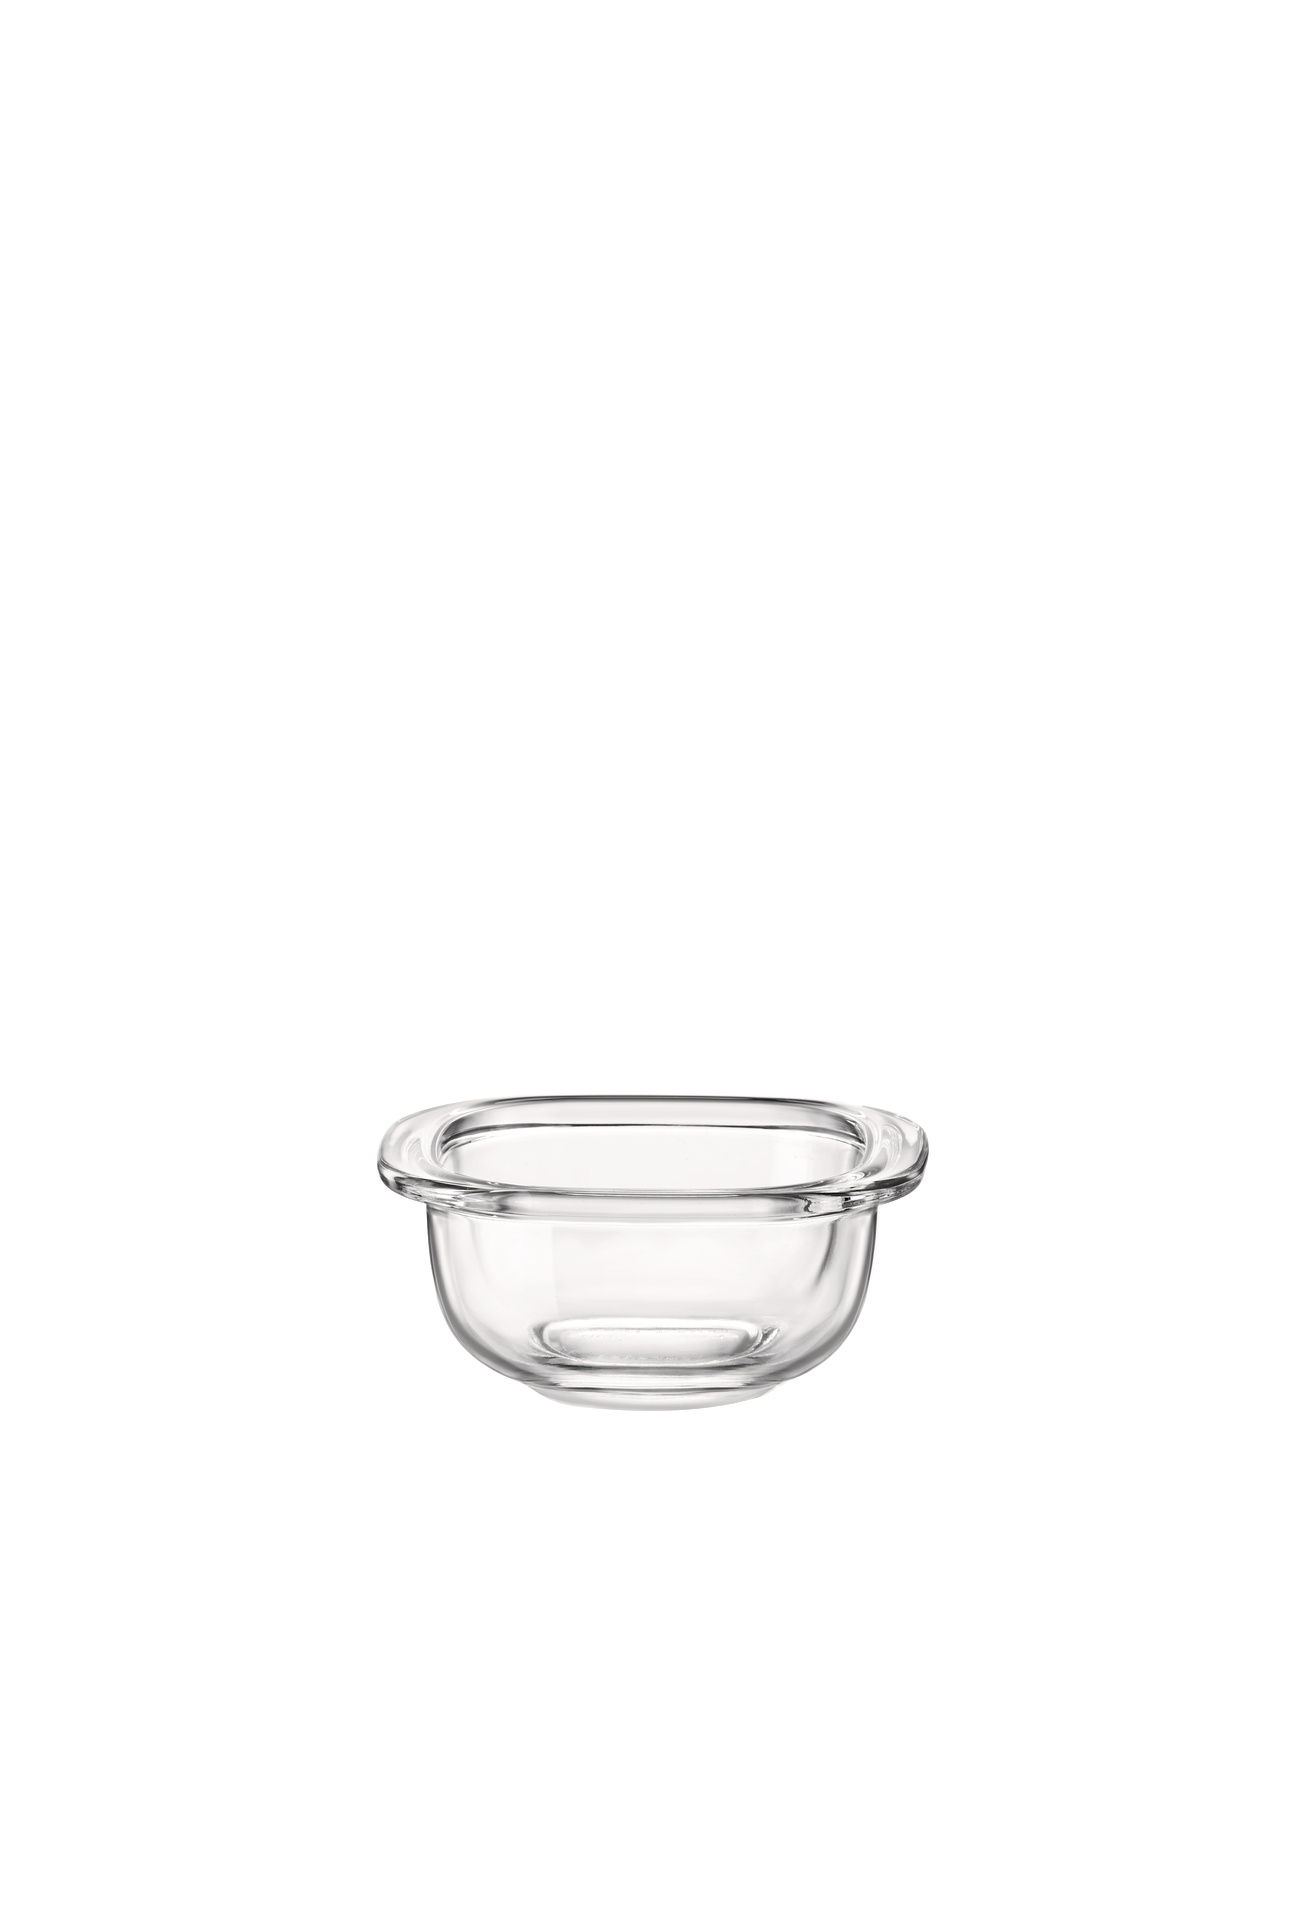 BUFFET GALA-COCOTTE ΜΠΩΛΑΚΙ 9.2x8cm - 12.5cl